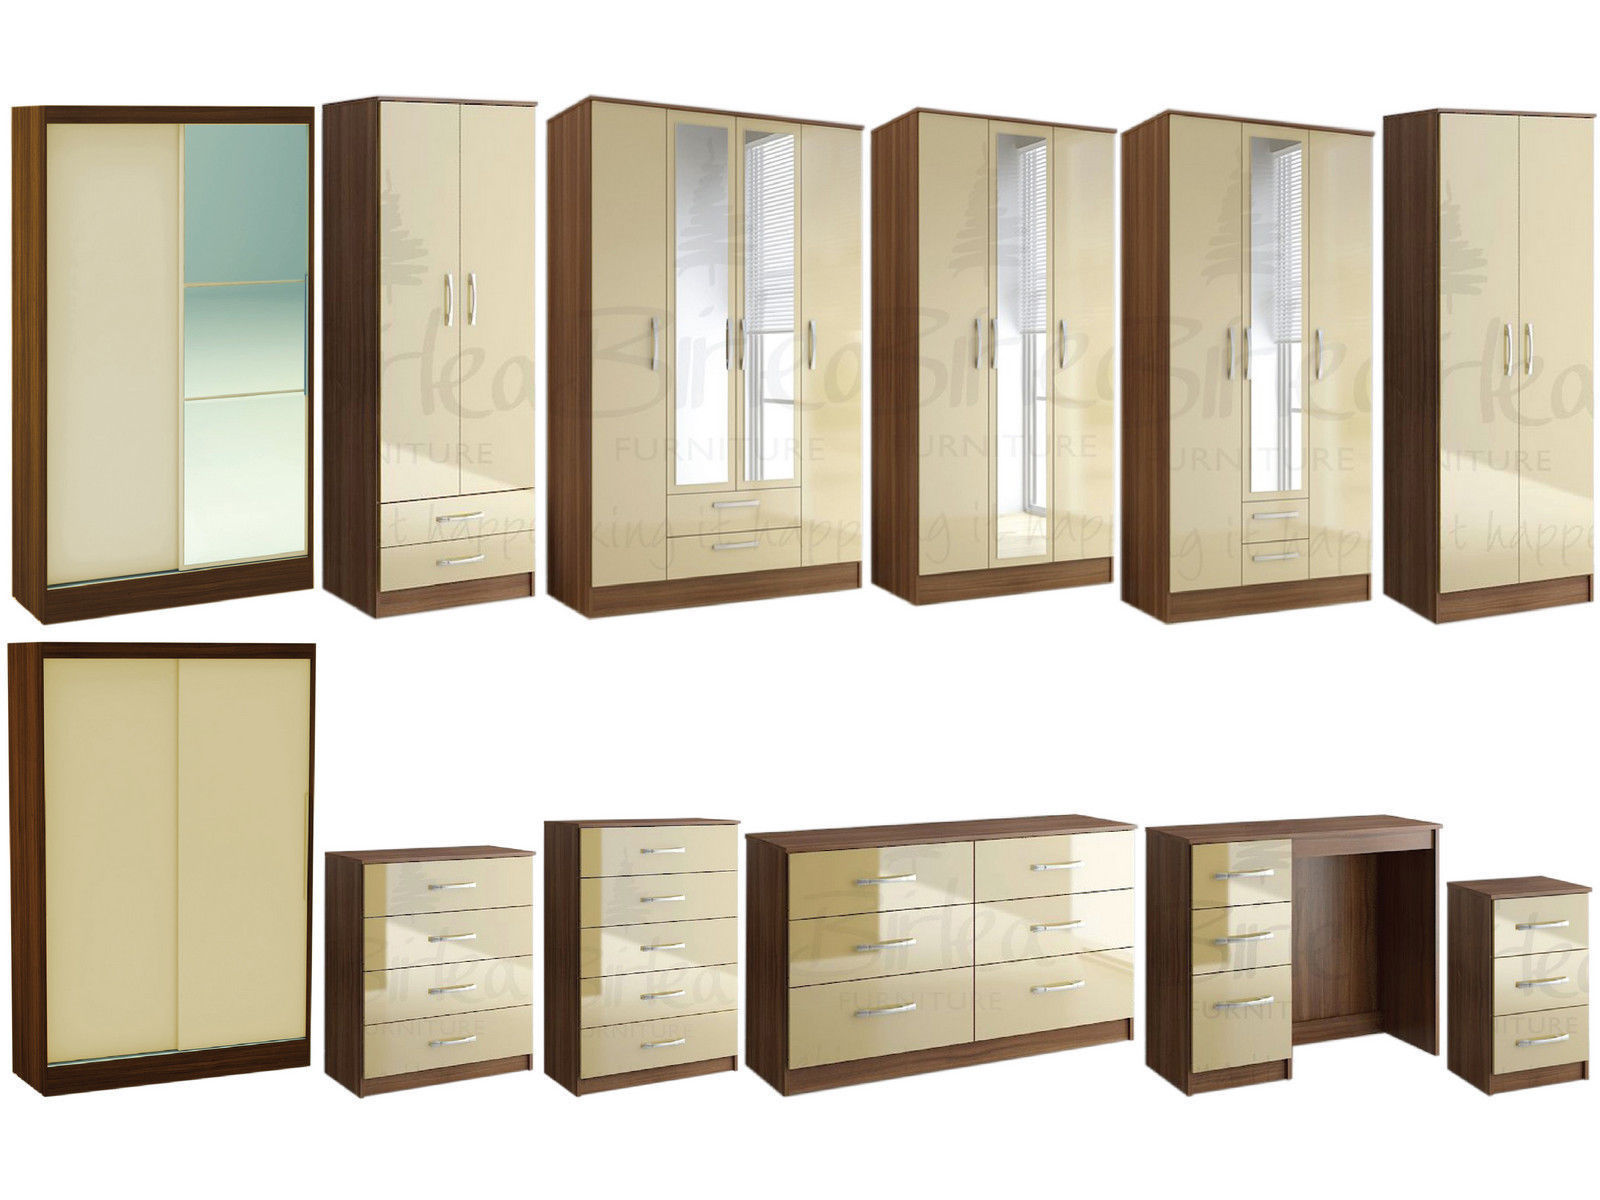 Bedroom furniture wardrobes - Lynx Walnut Cream Gloss Bedroom Furniture Wardrobe Chest By Birlea Large Sizes